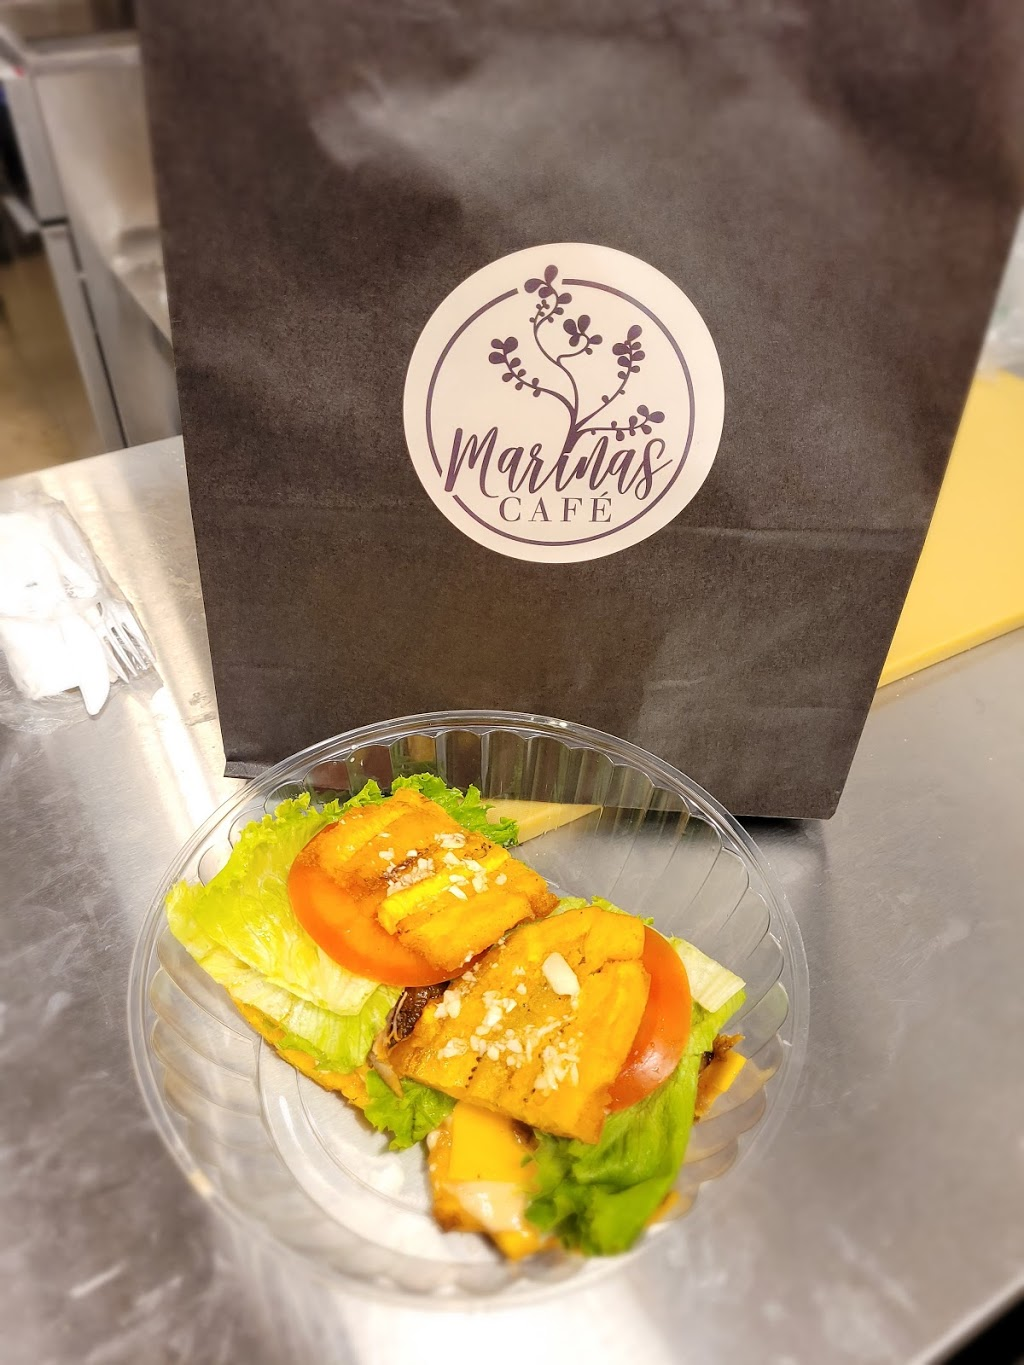 Marinas Cafe   meal delivery   3517 N Spaulding Ave, Chicago, IL 60618, USA